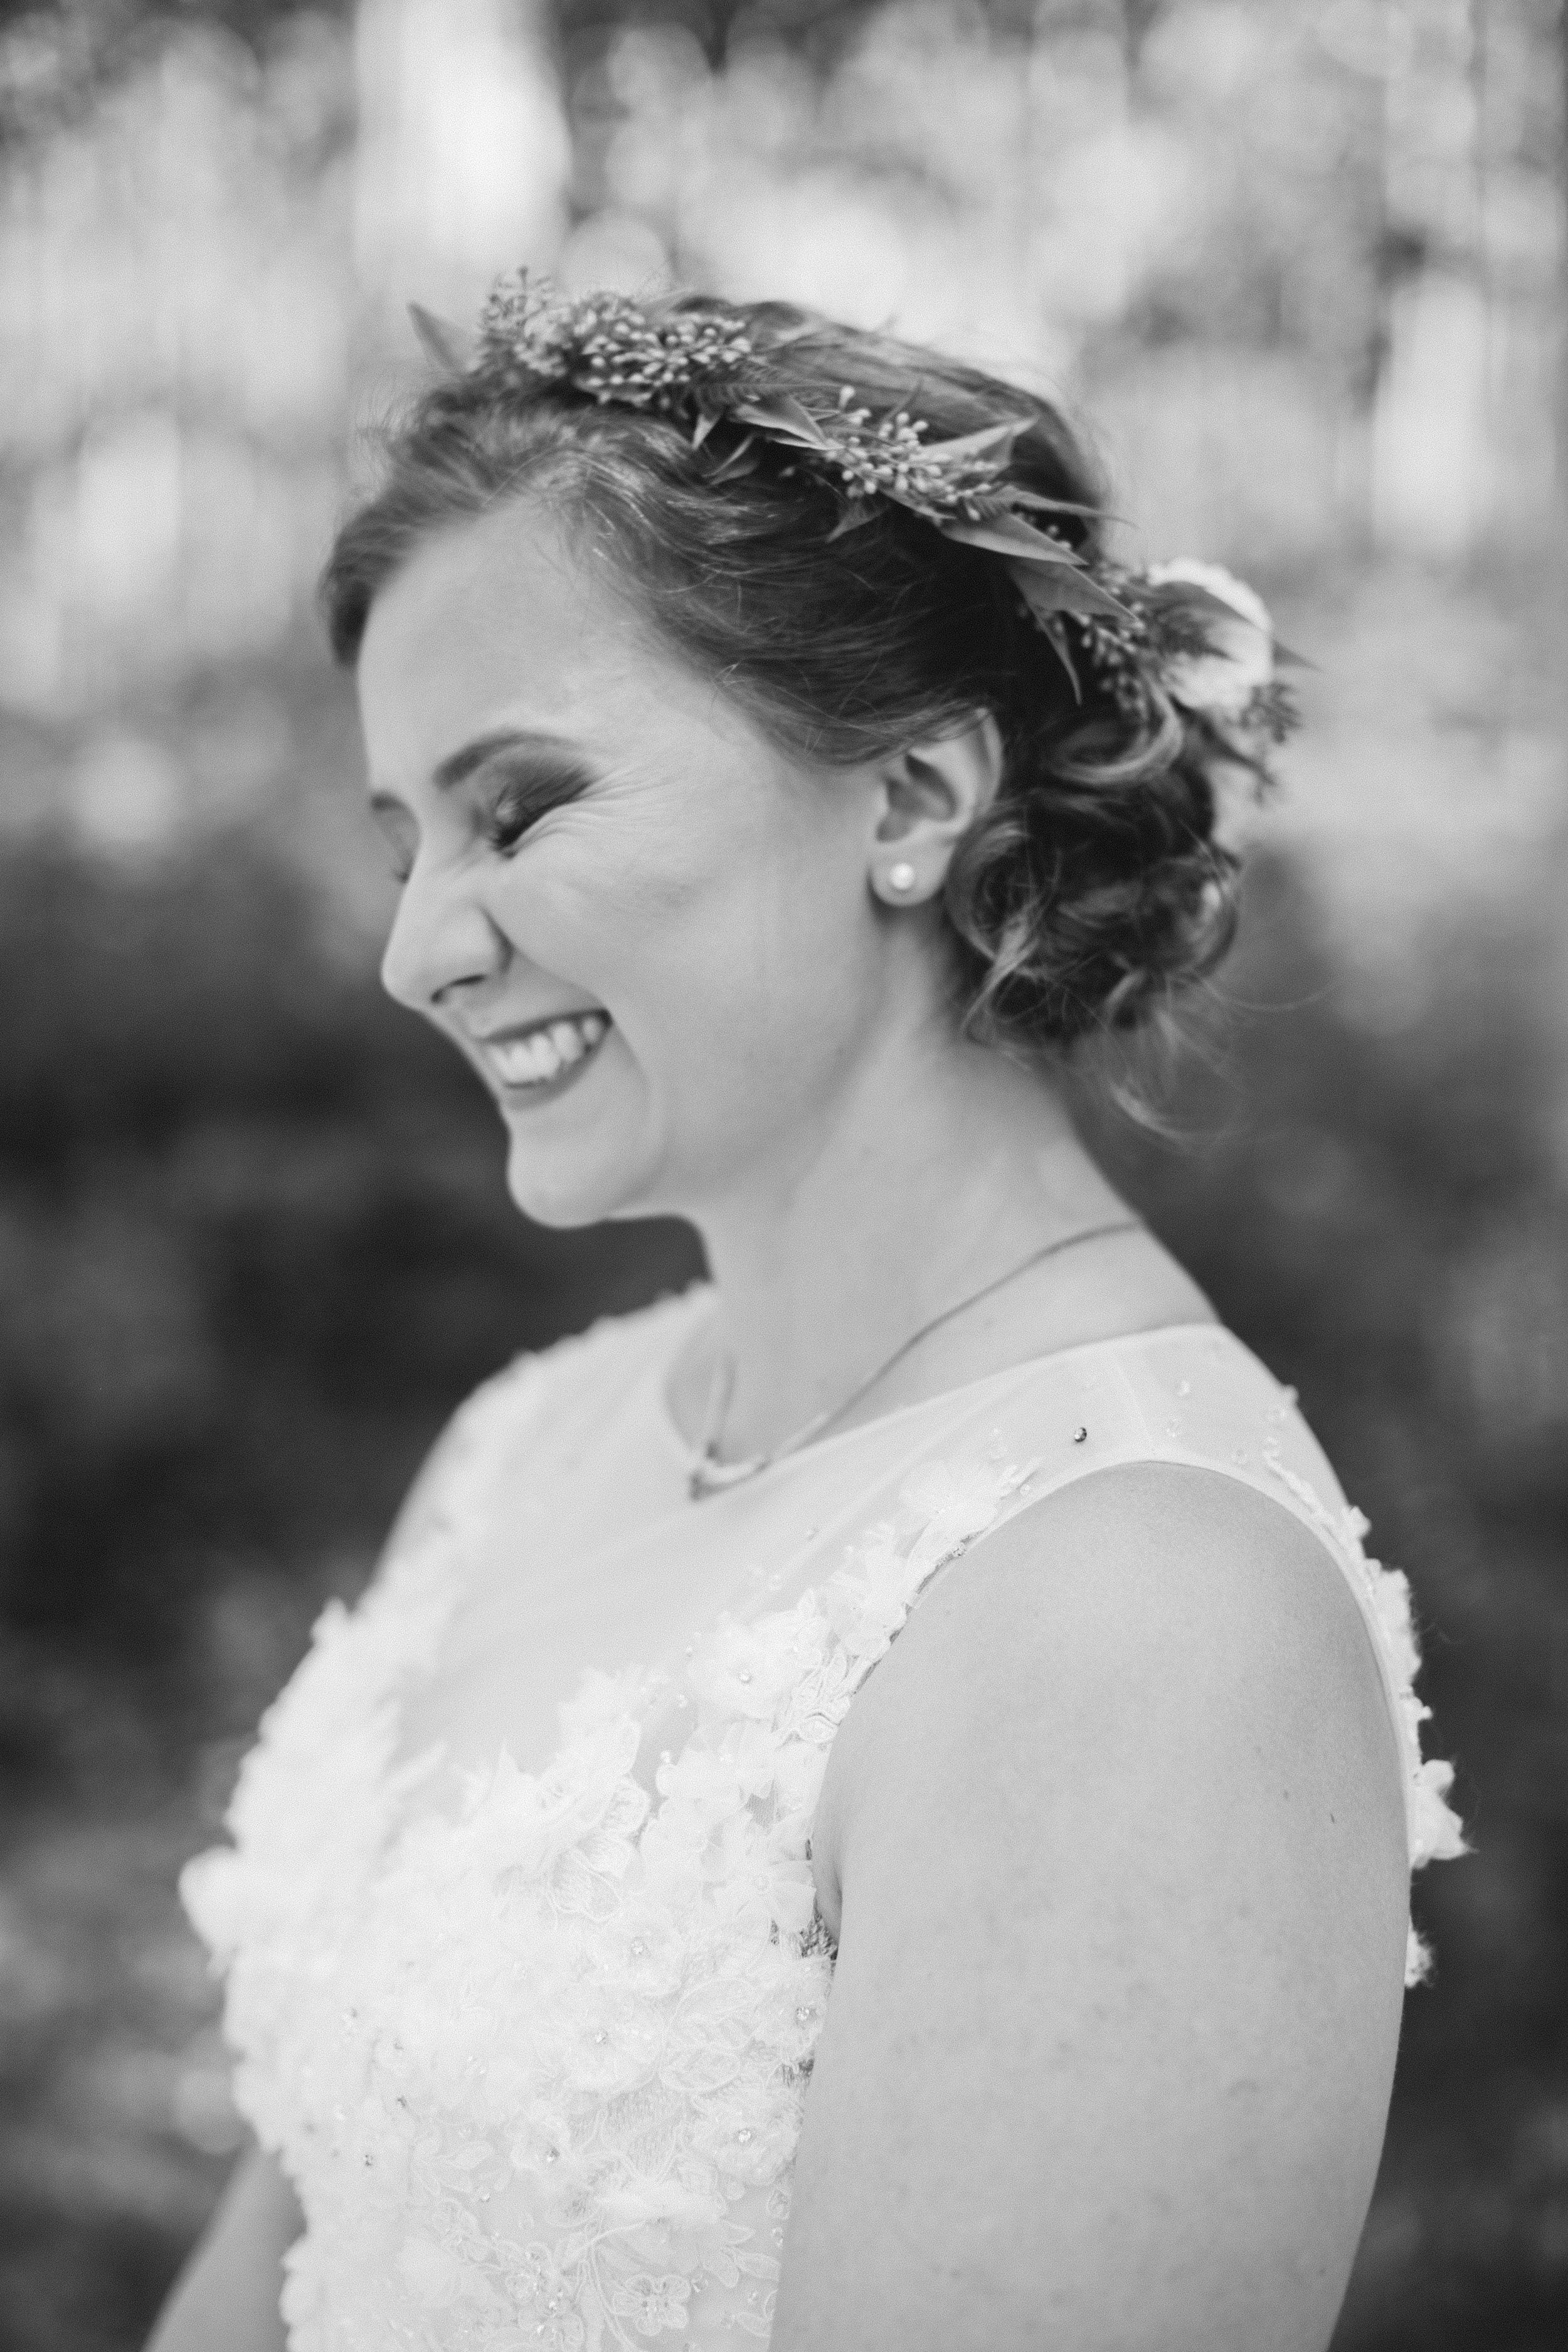 bride with flowers in her hair wedding in vail colorado mountains